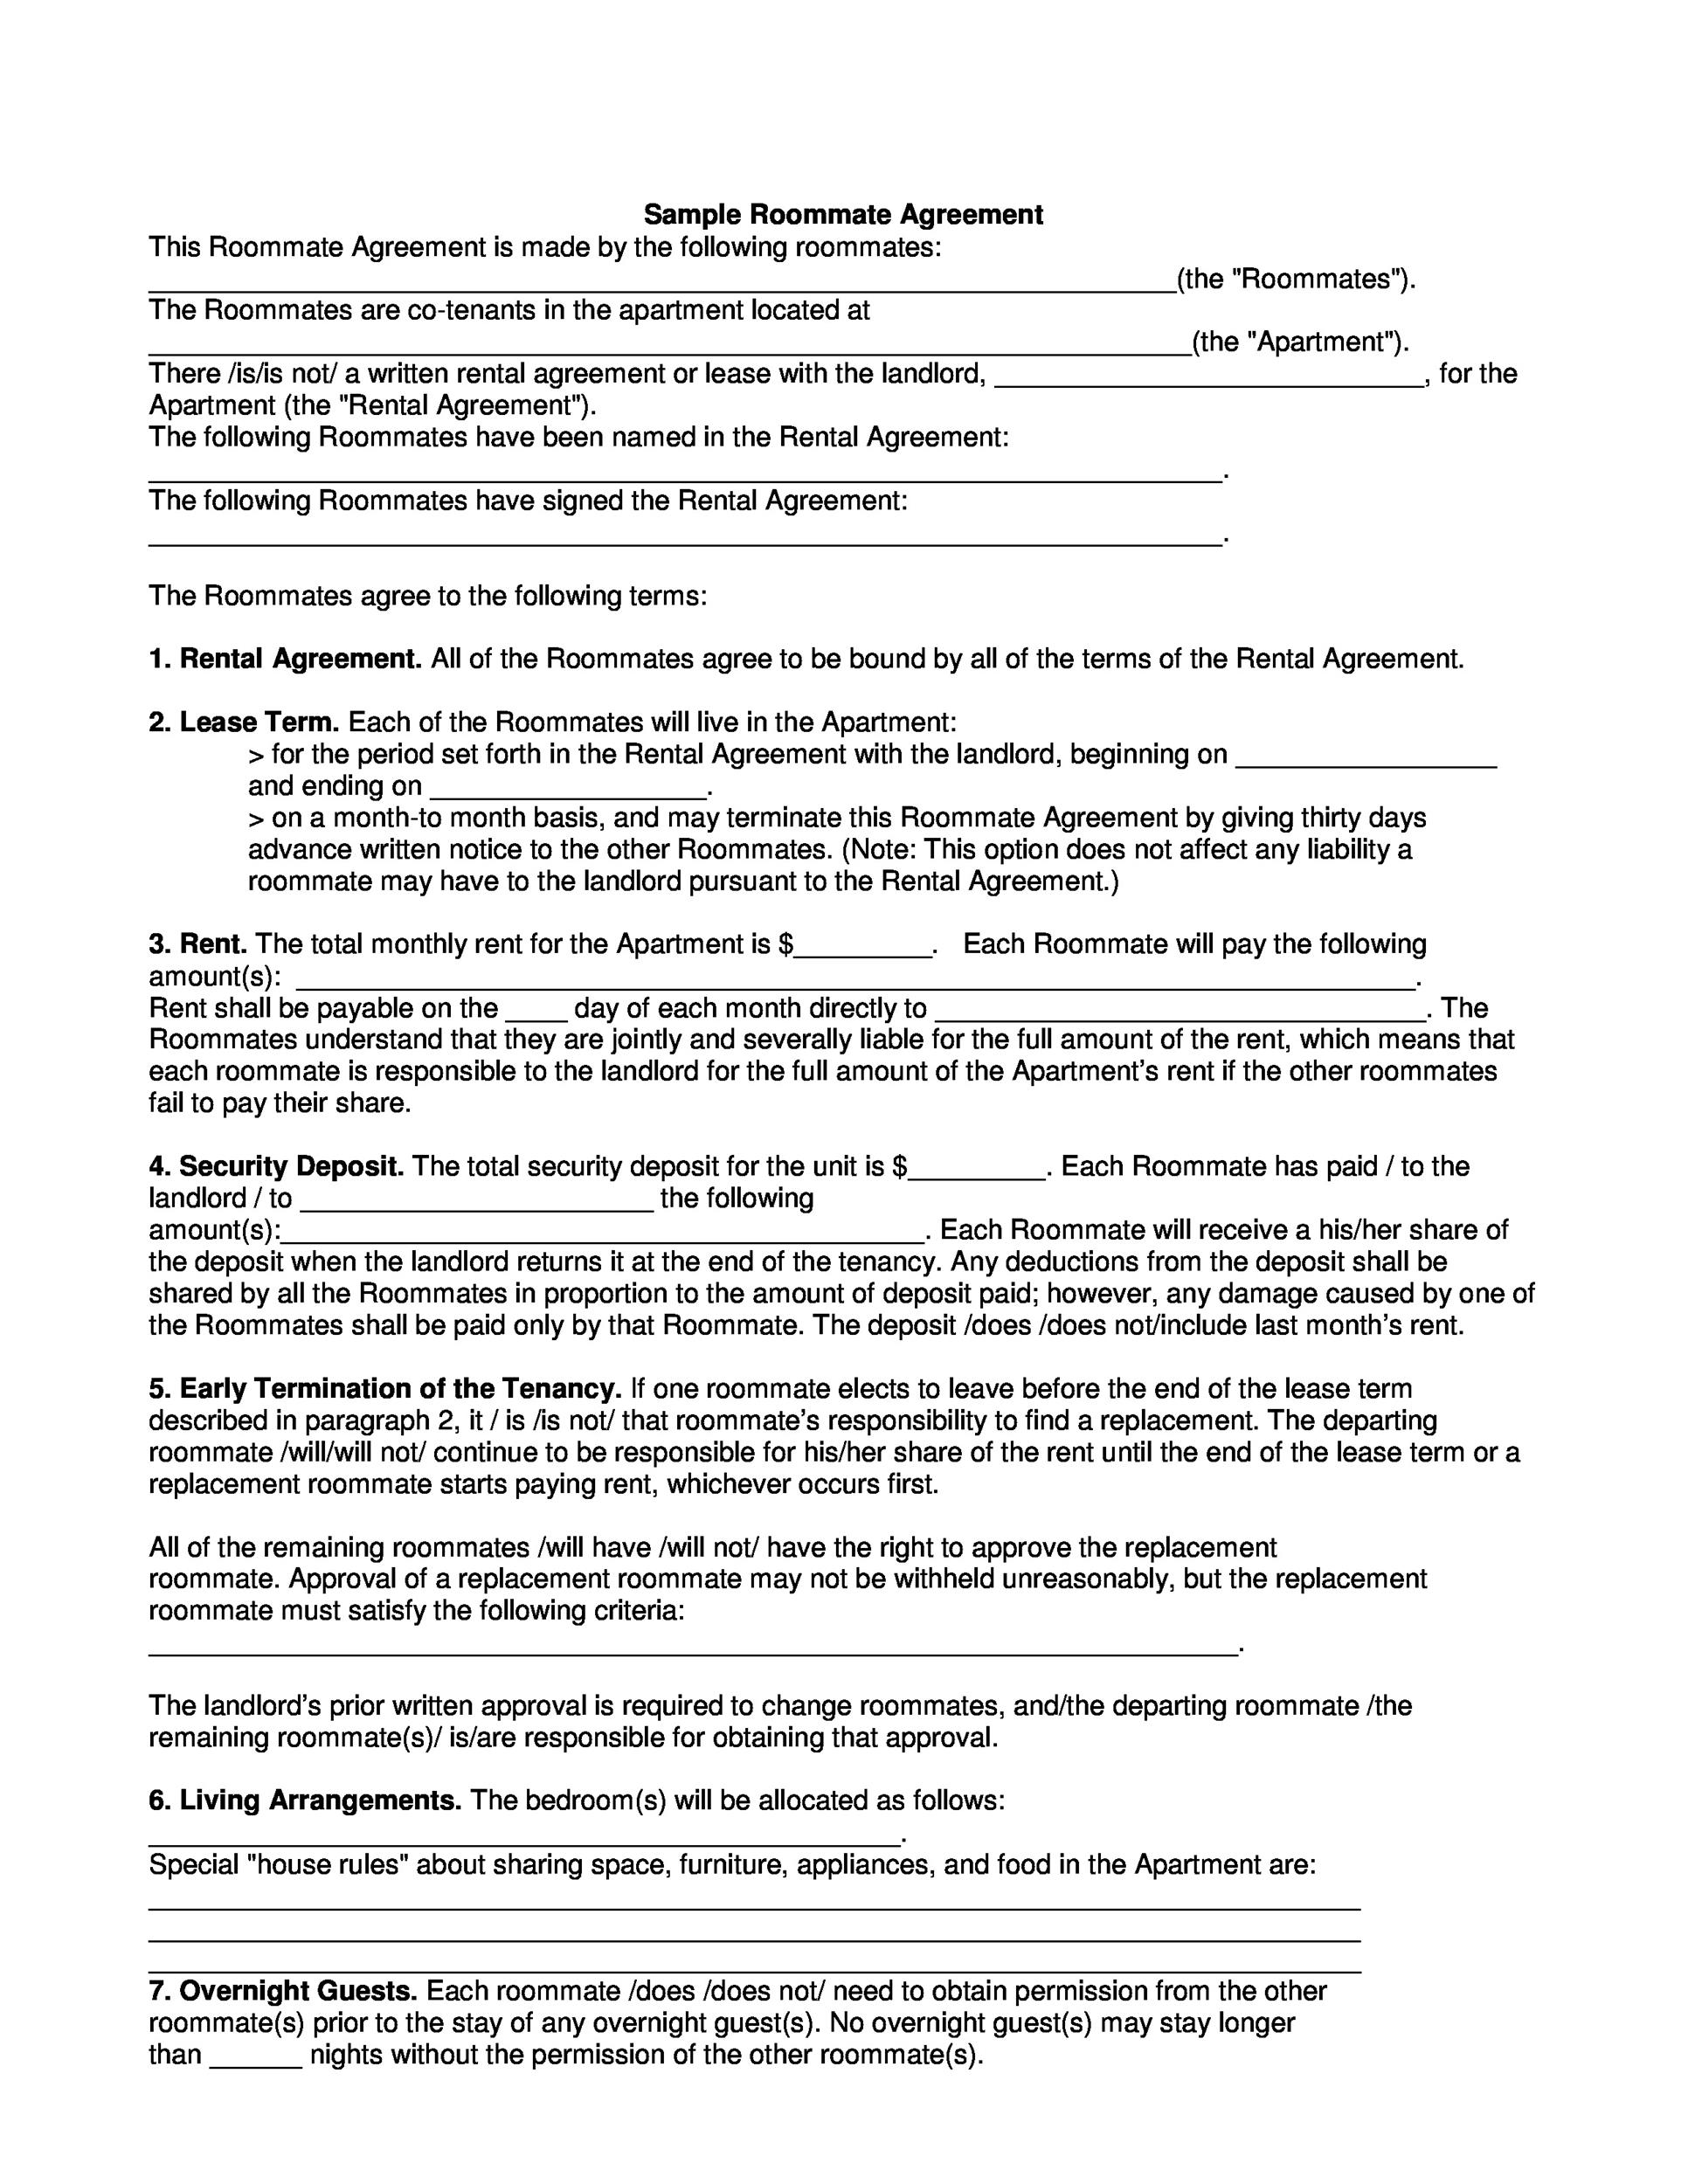 40 free roommate agreement templates forms word pdf printable roommate agreement template 27 pronofoot35fo Image collections